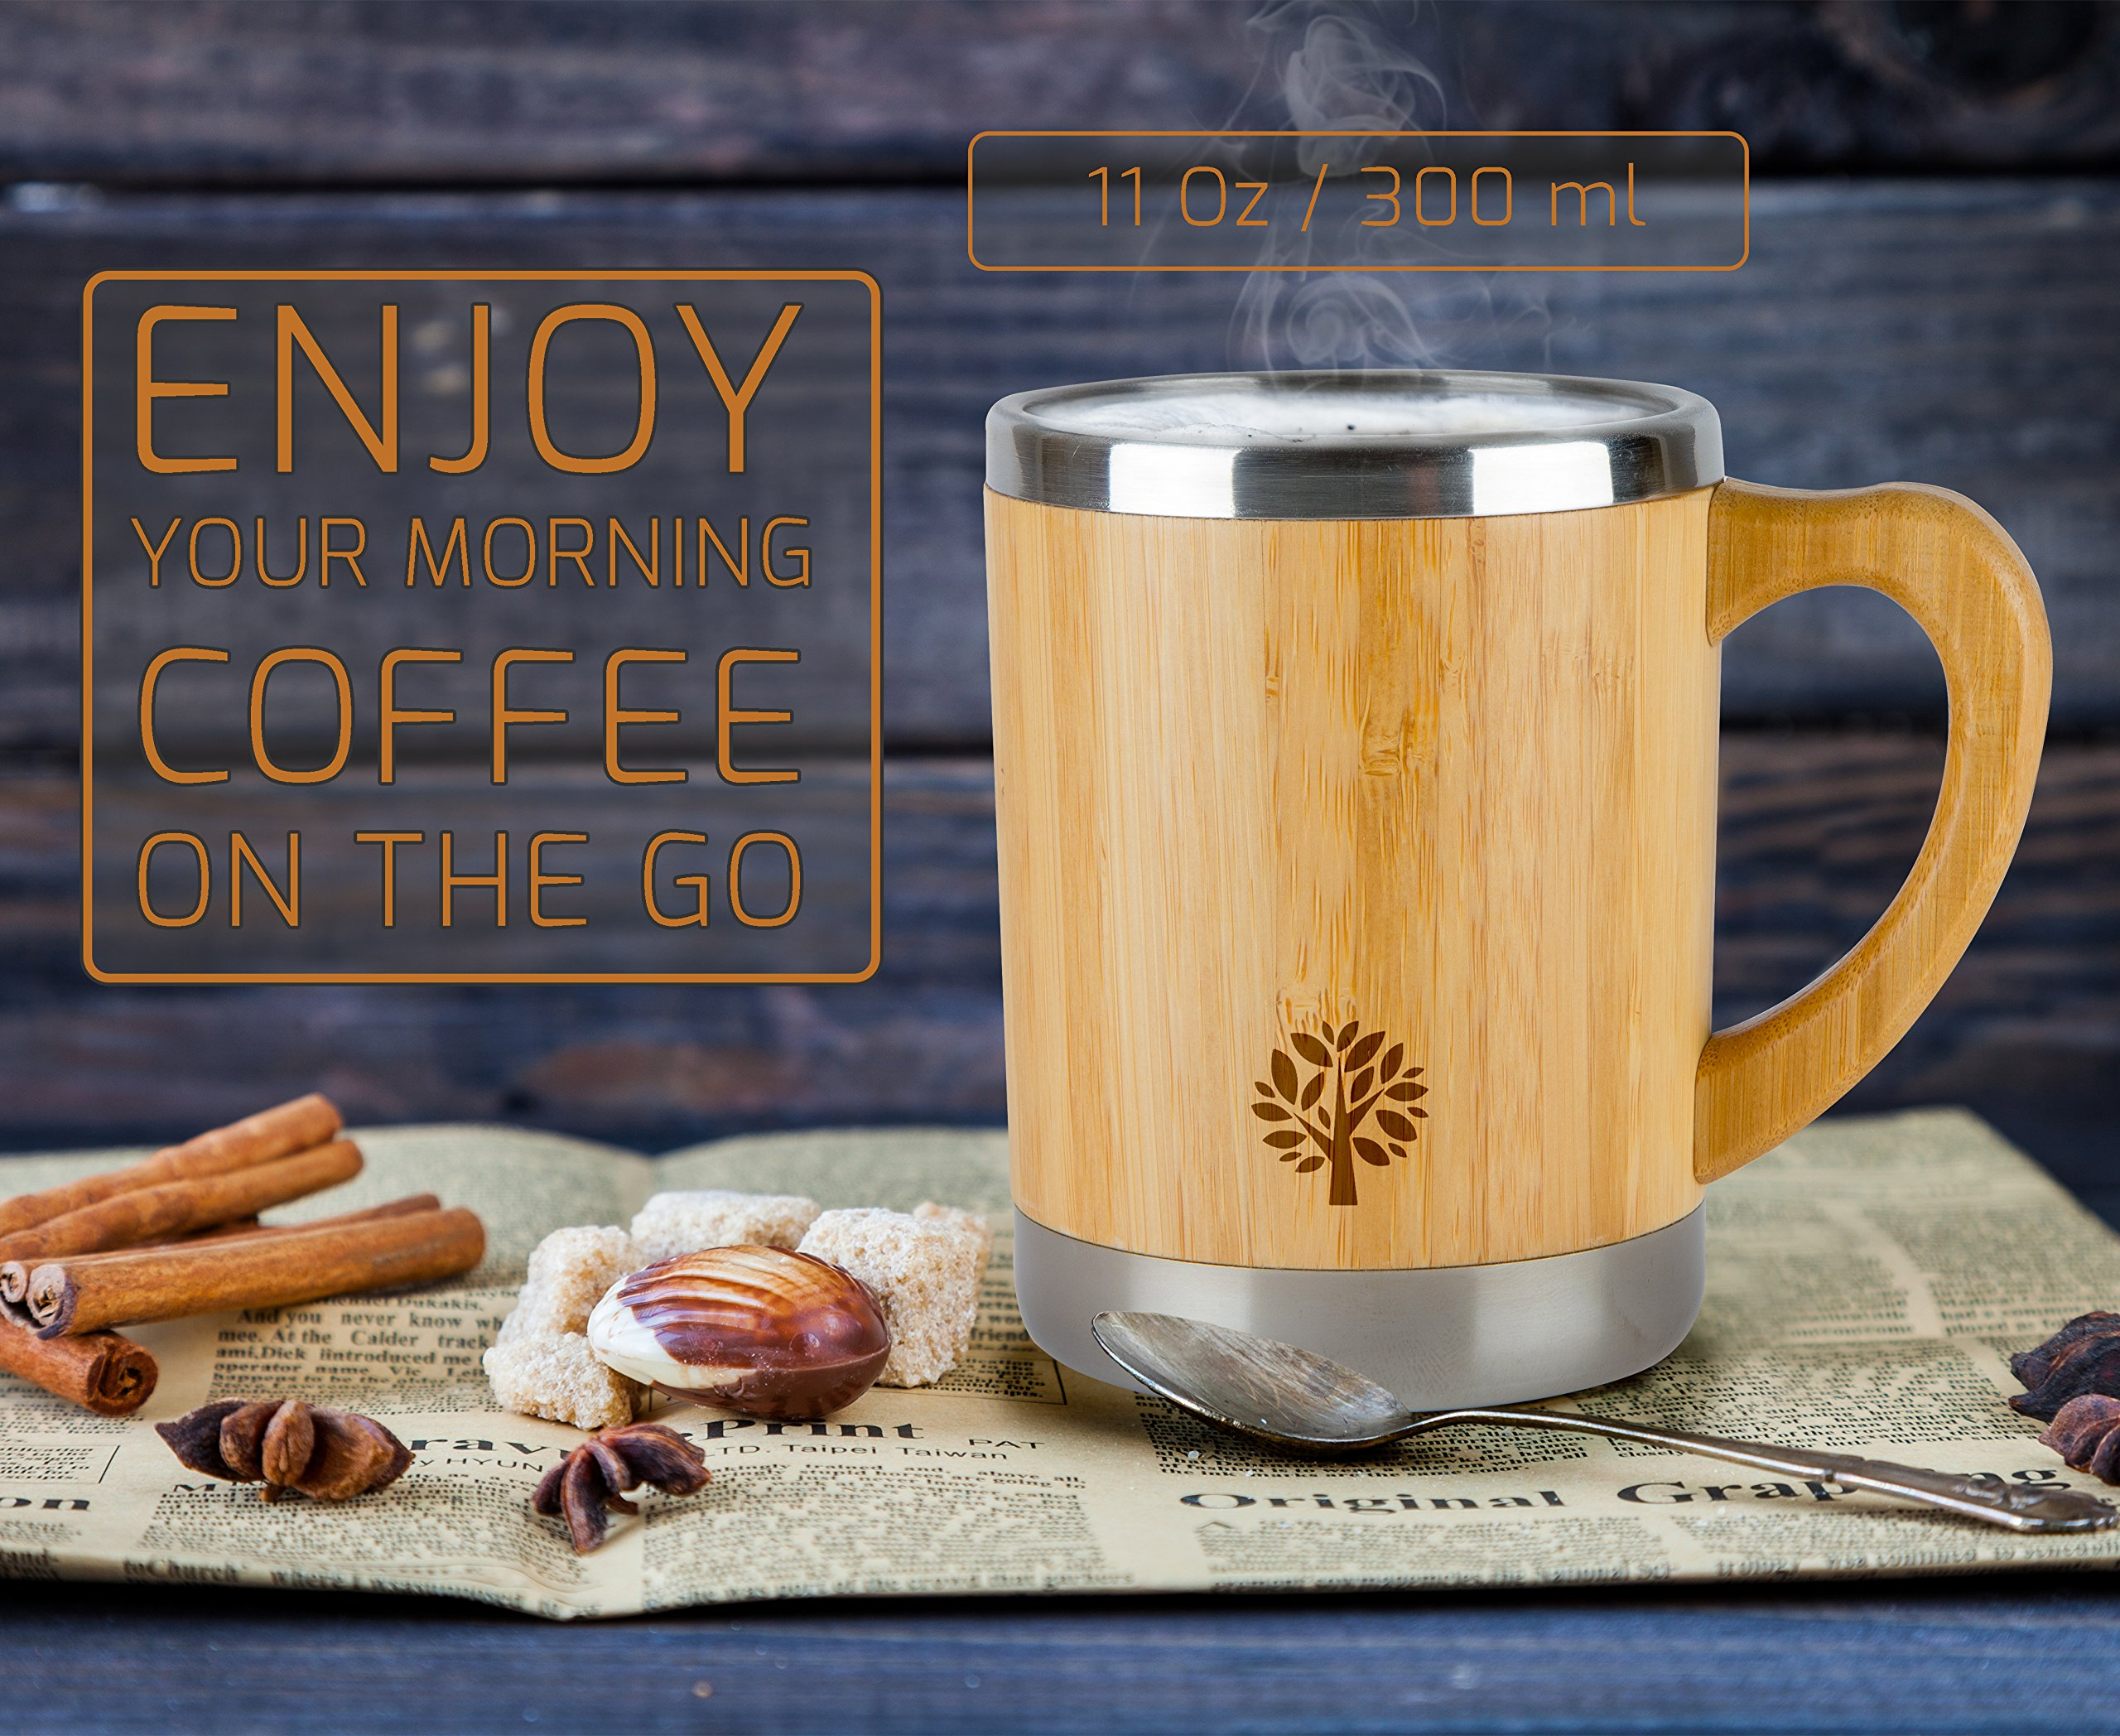 Stainless Steel & Bamboo Coffee Mug - Insulated Wooden Cup with Handle & Lid - Non-Spill On the Go - Keep Your Tea Hot Longer - Unique Gift for Men & Women - 11 oz / 300 ml by JJecommUS (Image #3)